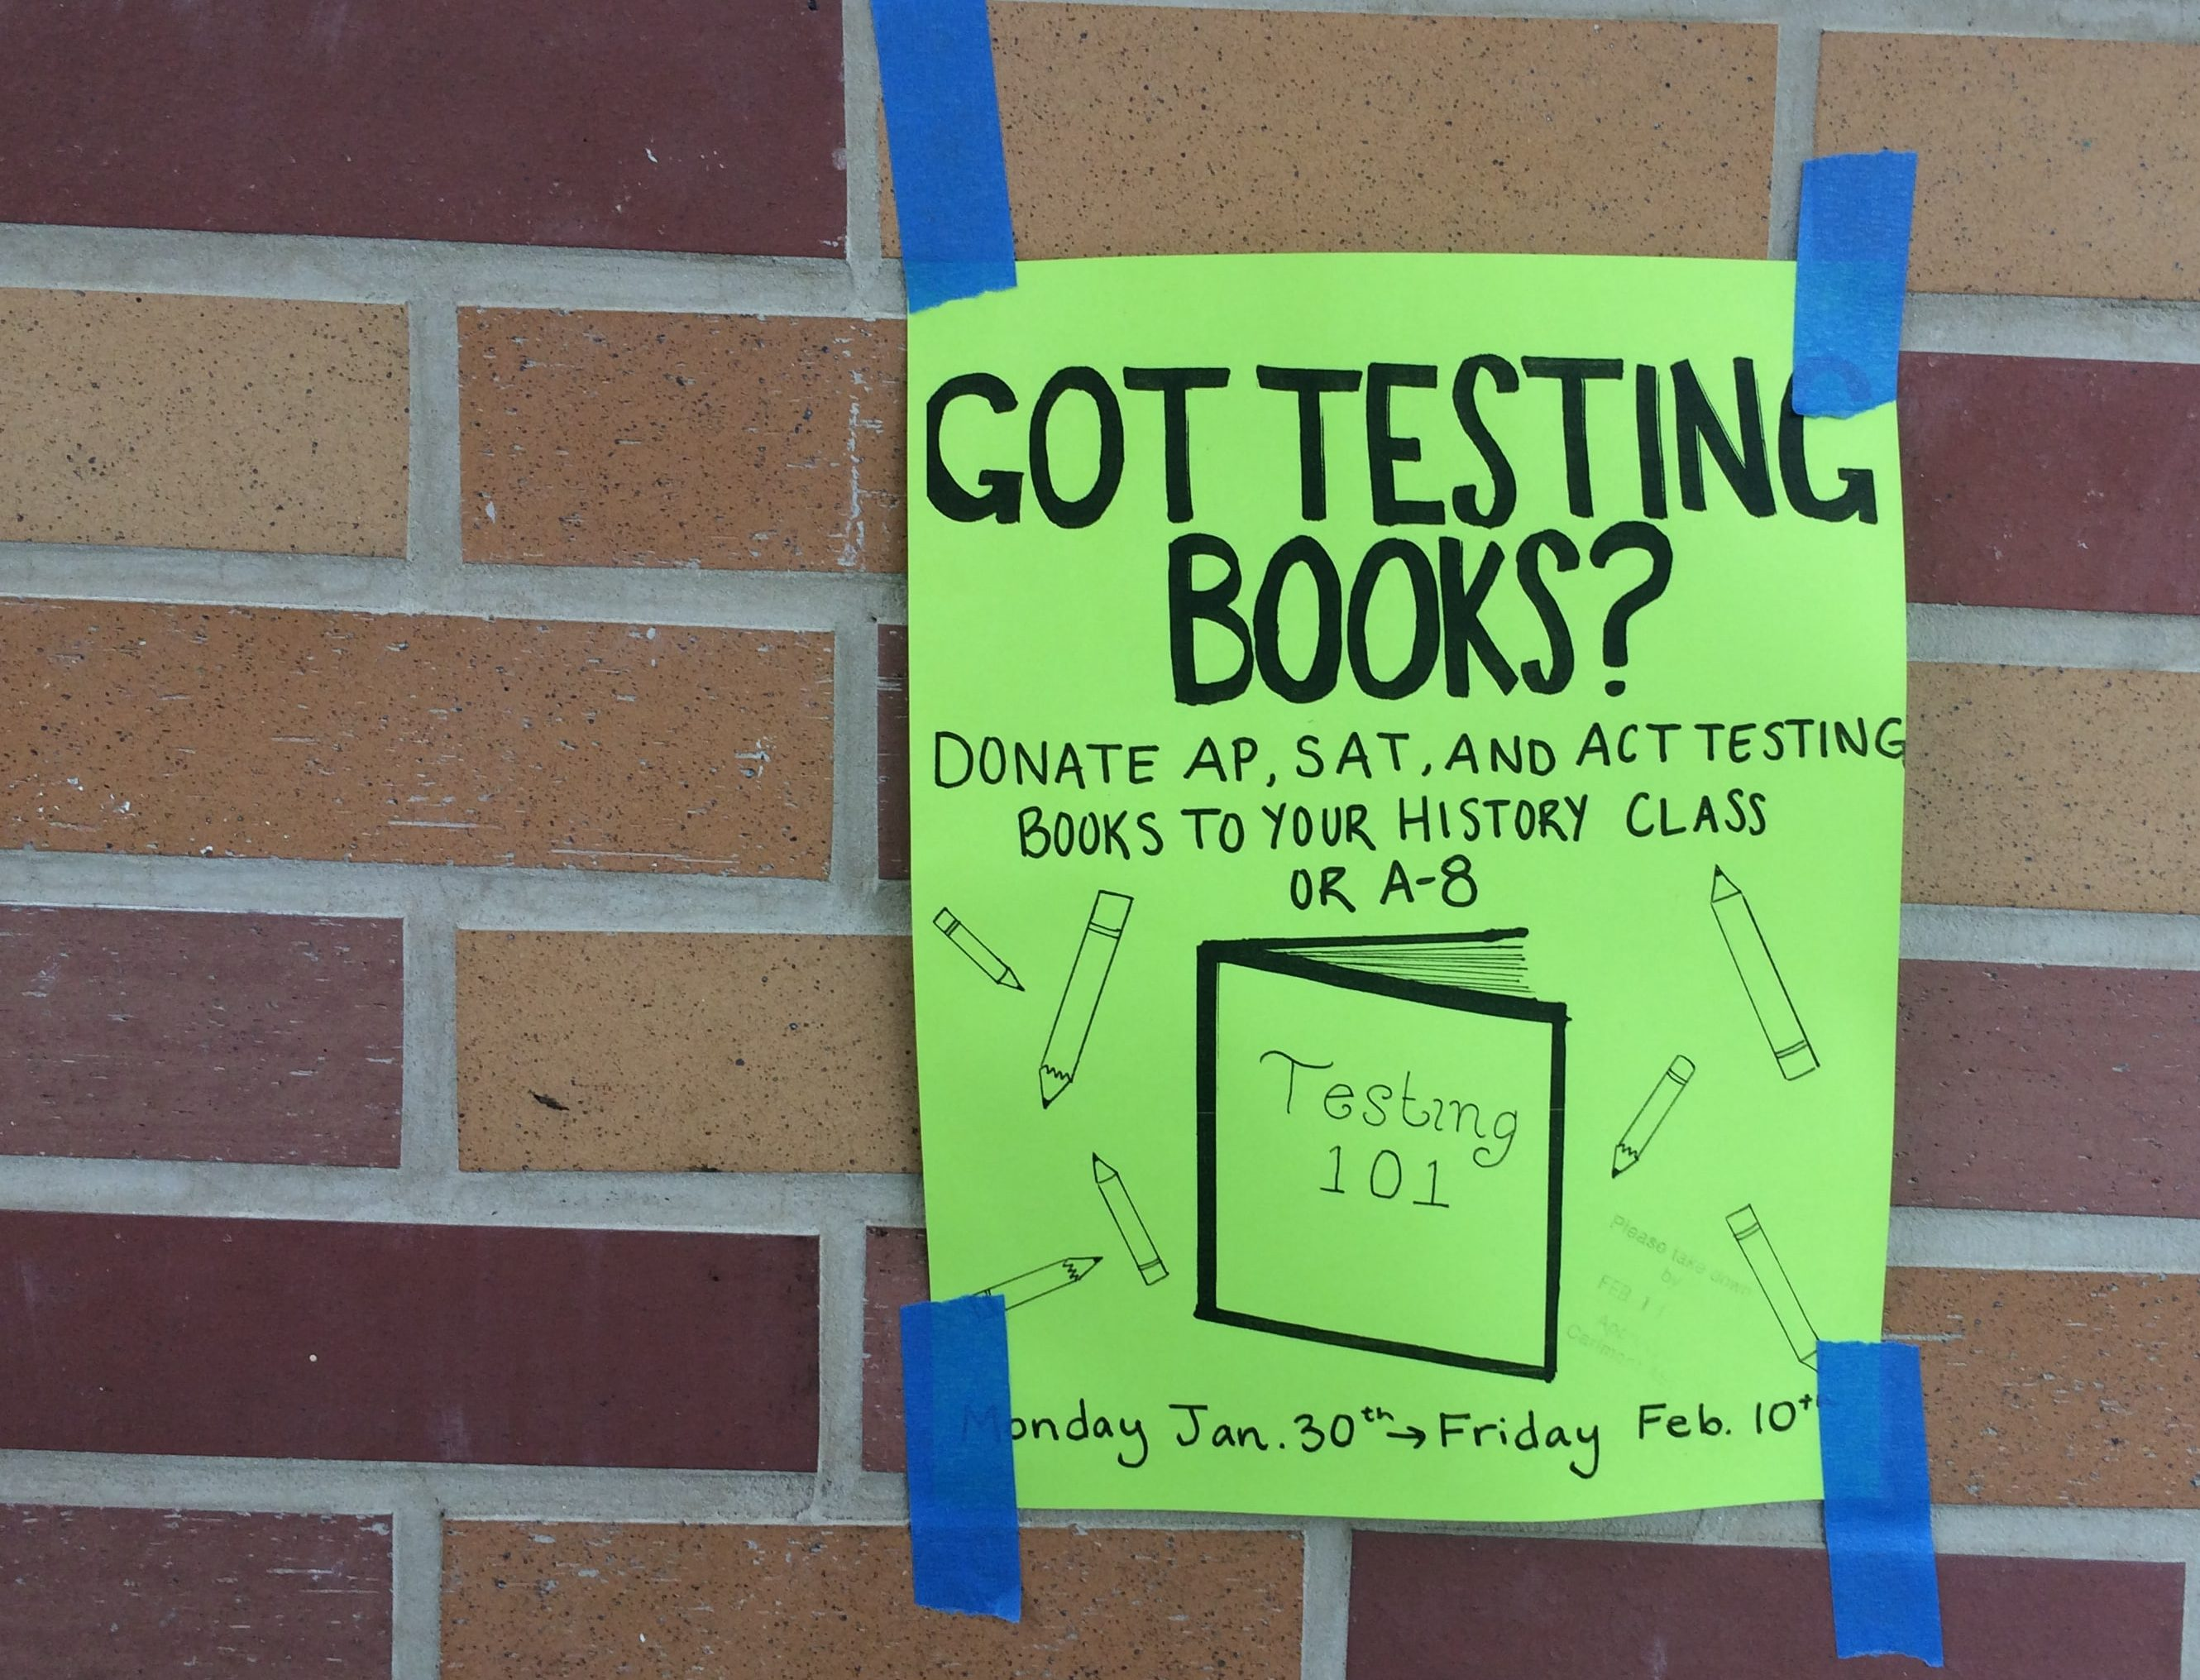 ASB promotes the testing book drive around campus.